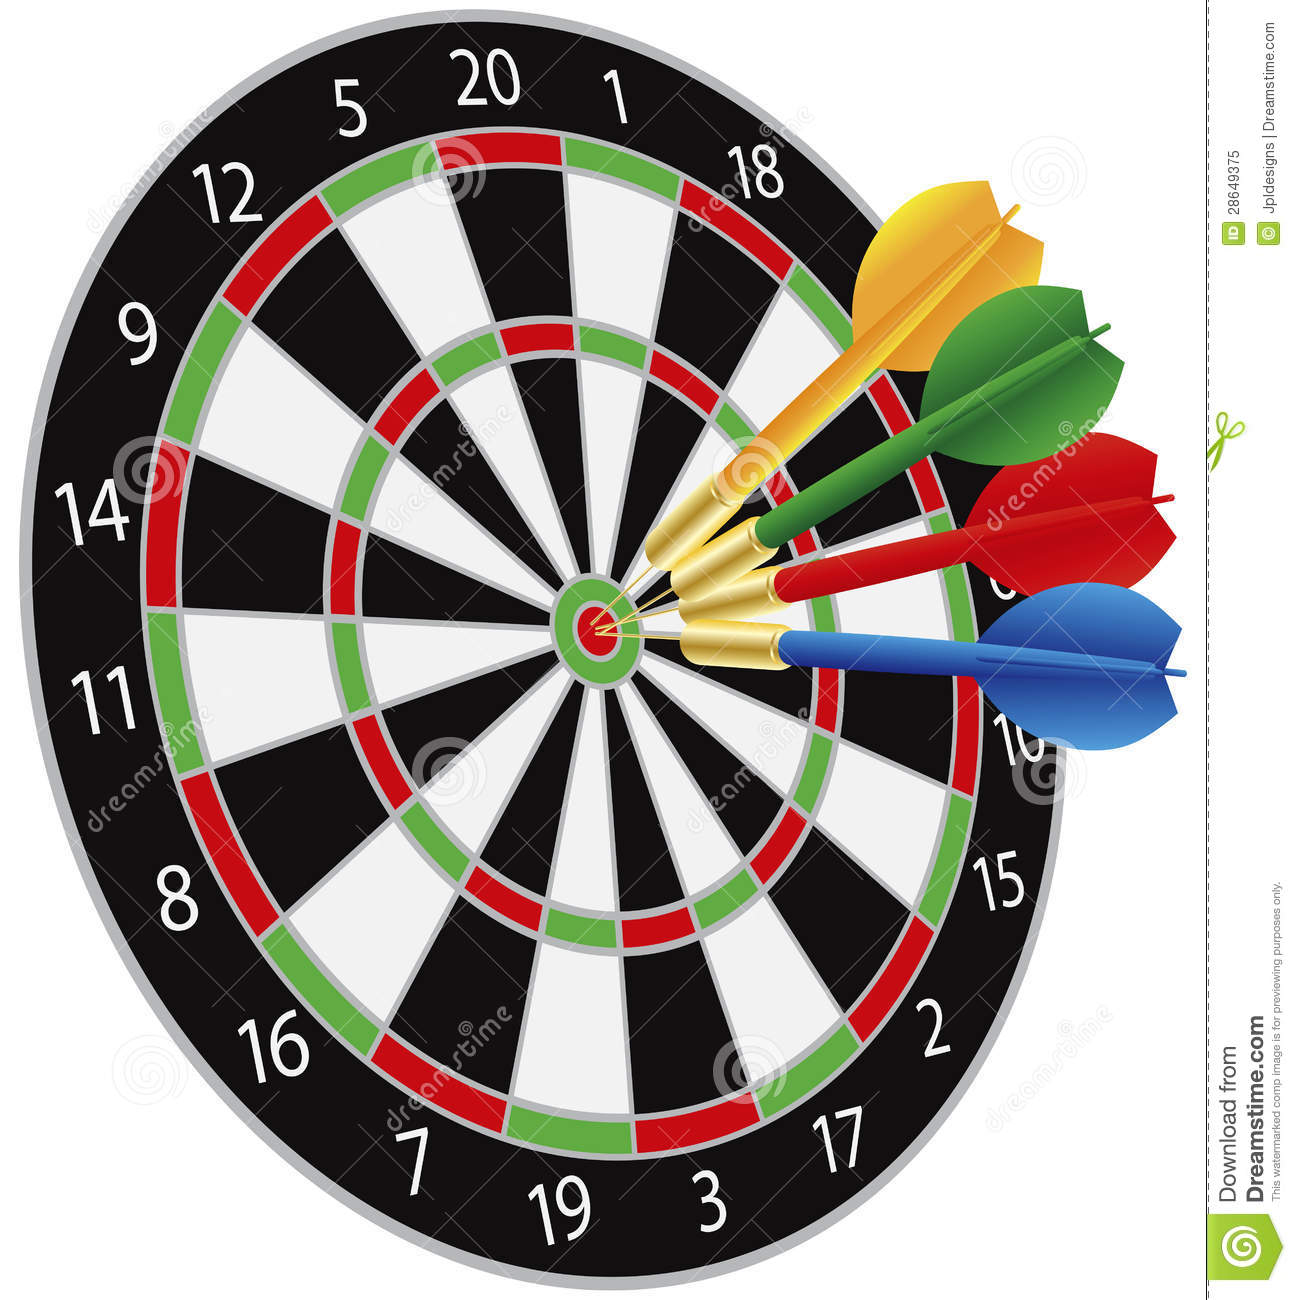 Dartboard with Darts Hitting on Target Bullseye Illustration Isolated ...